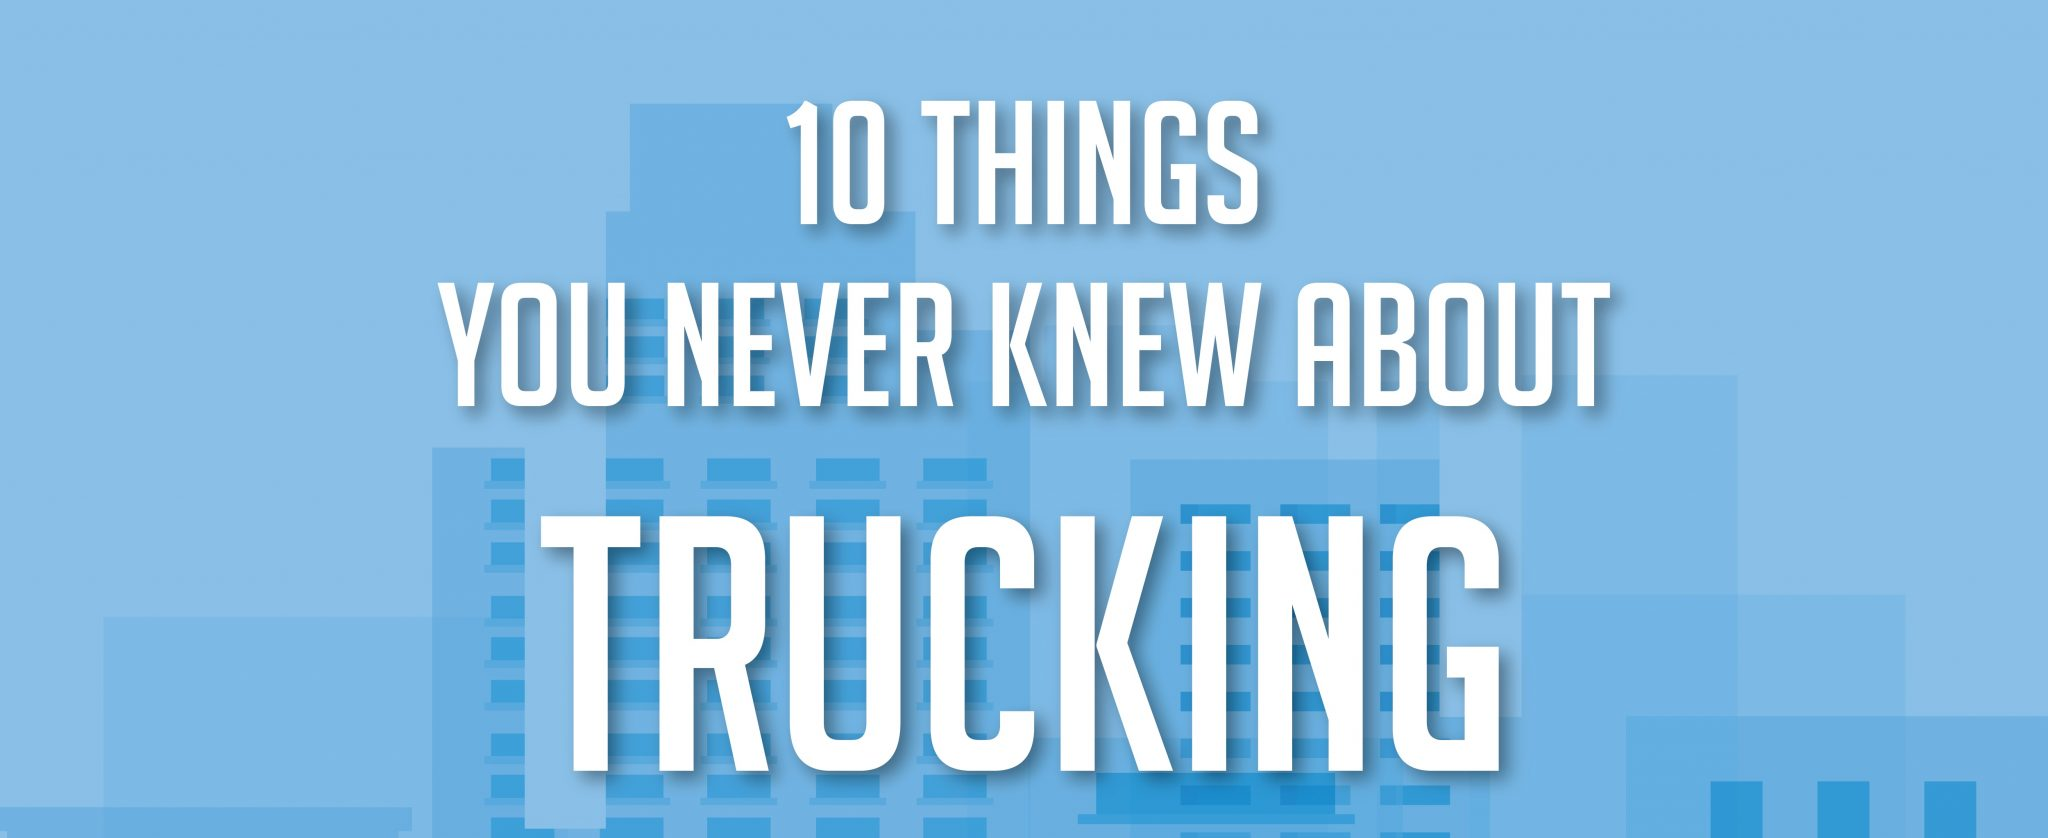 INFOGRAPHIC: 10 Things You Never Knew About Trucking